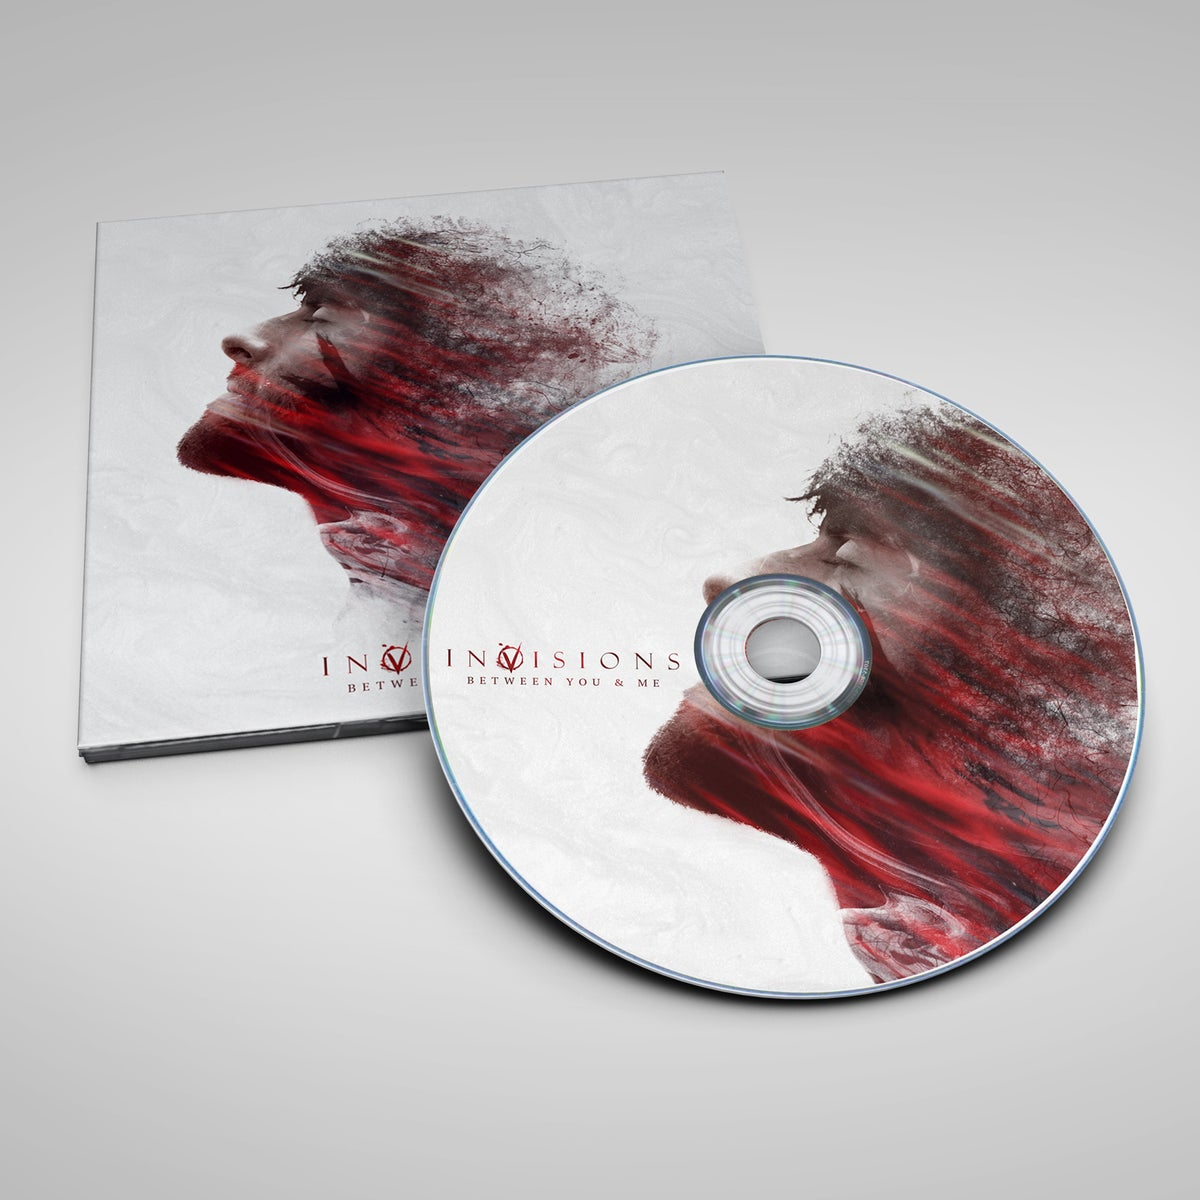 Image of Between You & Me - Physical CD (Pre-Order)